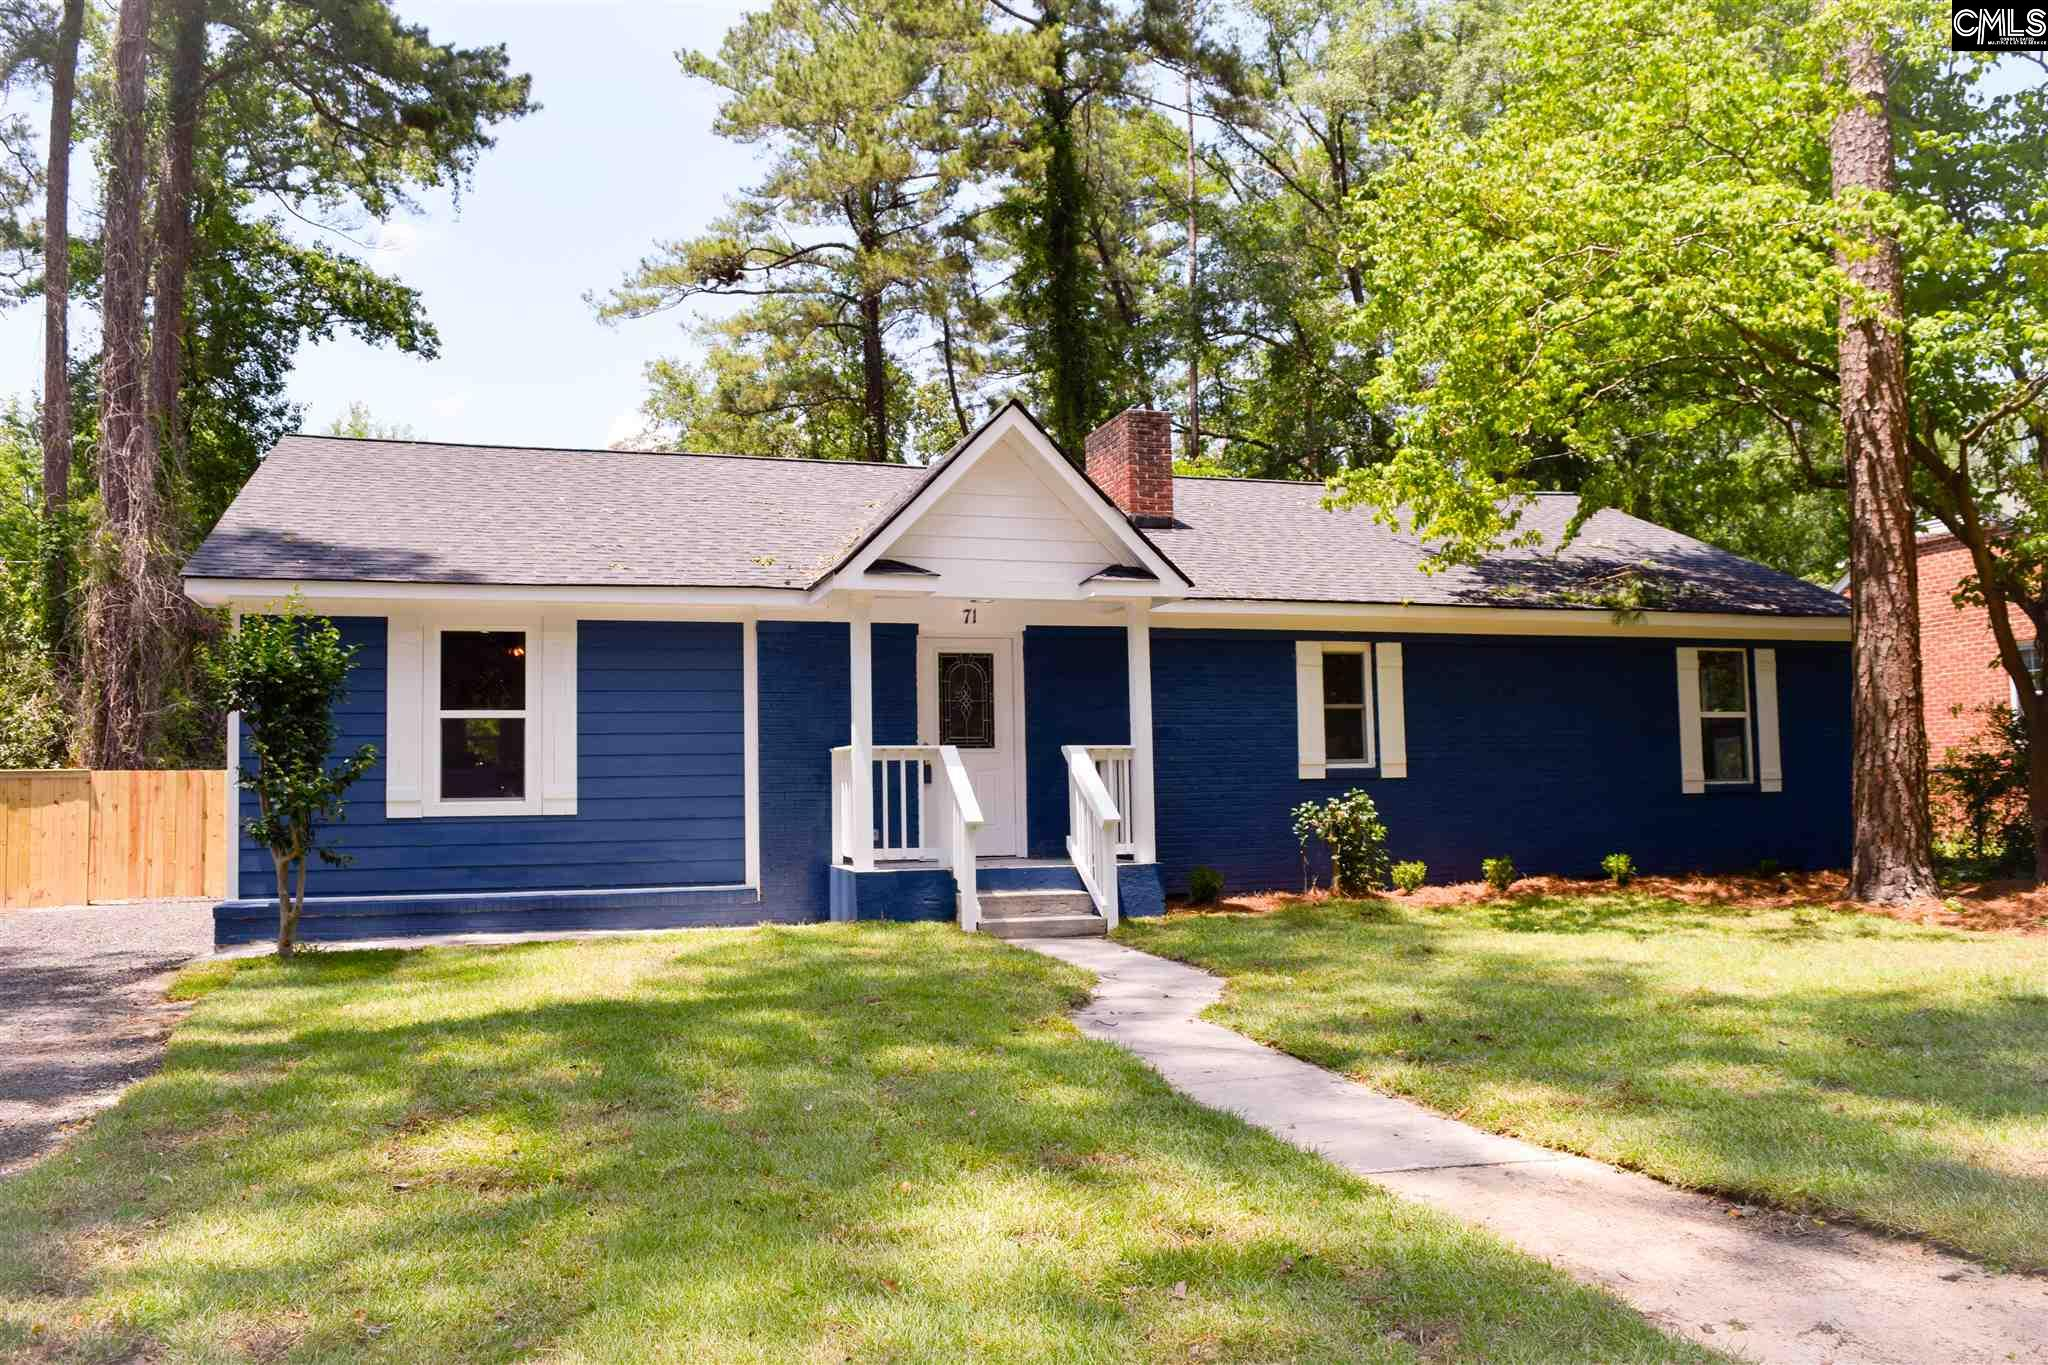 71 Downing Columbia, SC 29209